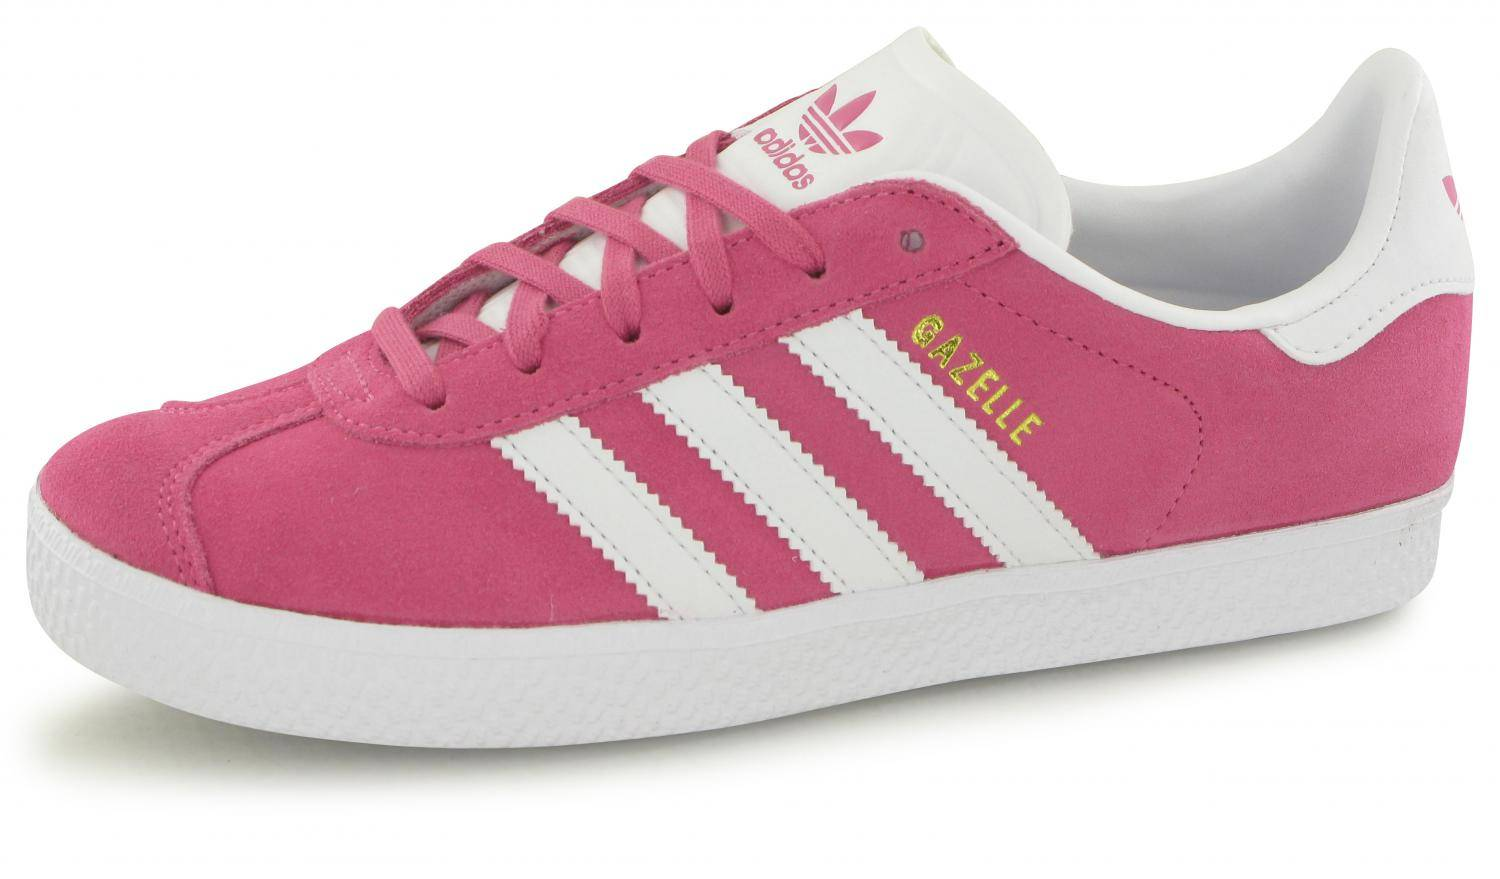 chaussures de sport 64fe9 1e83f Adidas Gazelle Rose / Blanc Junior